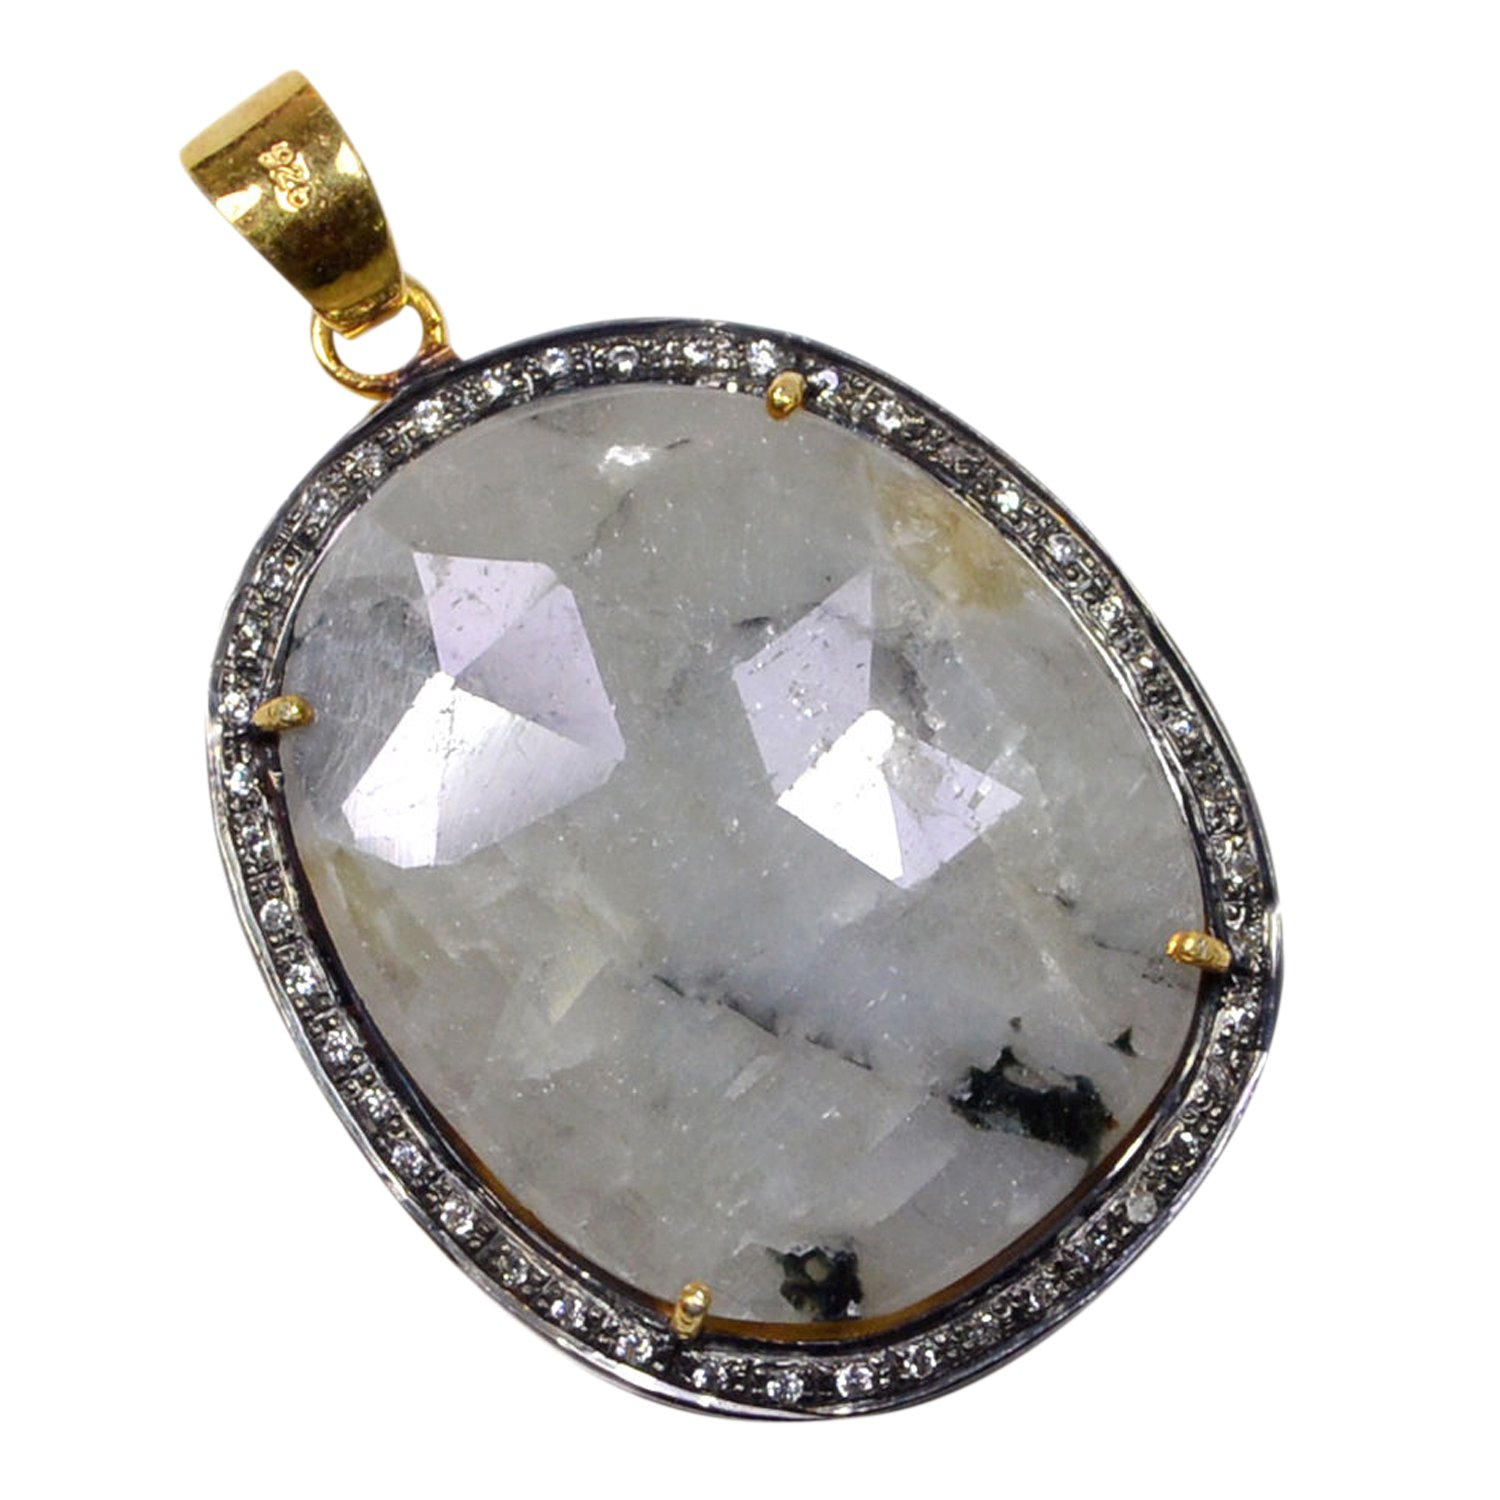 in 925 Sterling Silver Jaipur Rajasthan India Handmade Jewelry Manufacturer Wonder Sapphire /& Cubic Zirconia Gold Vermeil Prong Charm Pendant